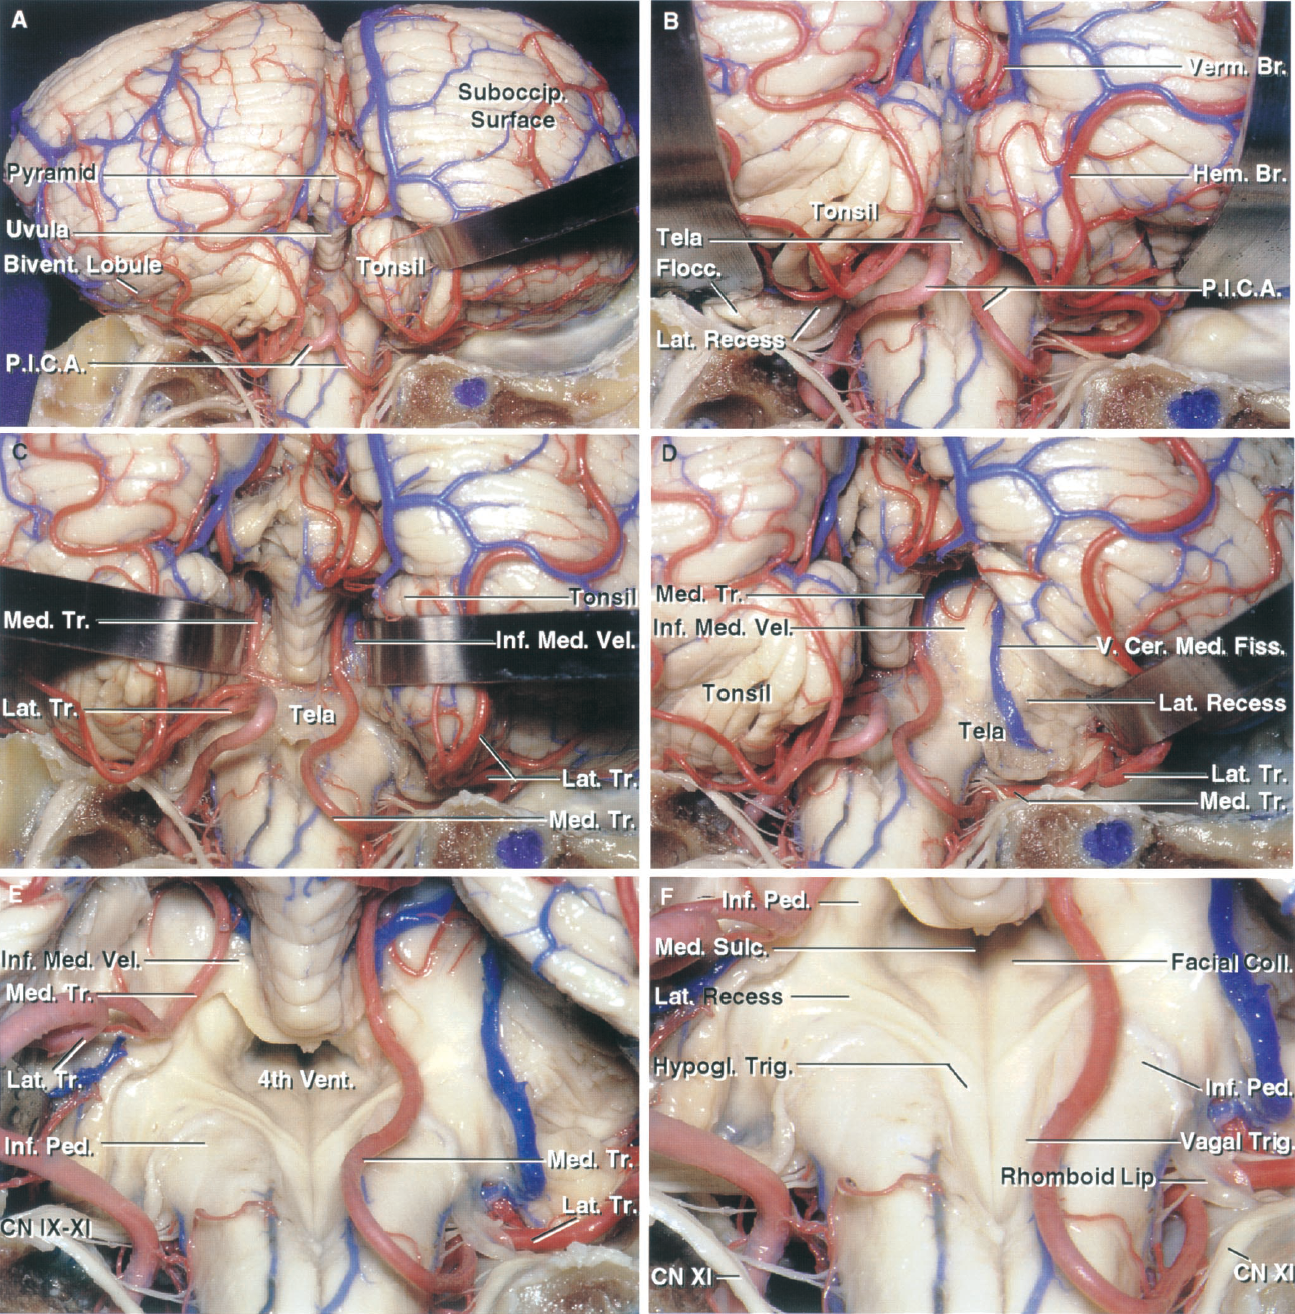 FIGURE 2.22. PICA relationships. A, the left PICA is larger than the right. Both PICAs enter the cerebellomedullary fissure, pass around the tonsils, and exit the fissure to supply the suboccipital surface. The natural cleft between the right tonsil and the biventral lobule has been opened. The tonsil is attached to the remainder of the cerebellum by the tonsillar peduncle, a white matter bundle along its superolateral margin. All of the other margins of the tonsils are free margins. B, enlarged view. The left biventral lobule has been elevated to expose the flocculus protruding from the margin of the lateral recess. C, the tonsils have been retracted laterally to expose the PICAs coursing in the cerebellomedullary fissure. The right PICA bifurcates into medial and lateral trunks before reaching the cerebellomedullary fissure. The left PICA bifurcates within the fissure. The medial trunks supply the vermis and adjacent part of the hemisphere and the lateral trunks supply the remainder of the hemisphere. D, the right tonsil has been removed to expose the lateral recess and bifurcation of the right PICA into medial and lateral trunks. E, both tonsils and the tela have been removed to expose the ventricular floor and walls. The left PICA divides into its trunks within the cerebellomedullary fissure. The inferior medullary velum has been preserved, but is a thin layer that can be opened, if needed, to increase the exposure of the fourth ventricle. F, enlarged view showing the relationship of the PICAs to the fourth ventricle. The PICAs, after passing between the rootlets of the accessory rootlets course along the caudolateral margin of the fourth ventricle on the inferior cerebellar peduncle before entering the cerebellomedullary fissure. The left PICA has been reflected laterally. The facial colliculus is in the upper and hypoglossal and vagal nuclei are in the lower part of the floor. Bivent., biventral; Br., branch; Cer. Med., cerebellomedullary; CN, cranial nerve; C